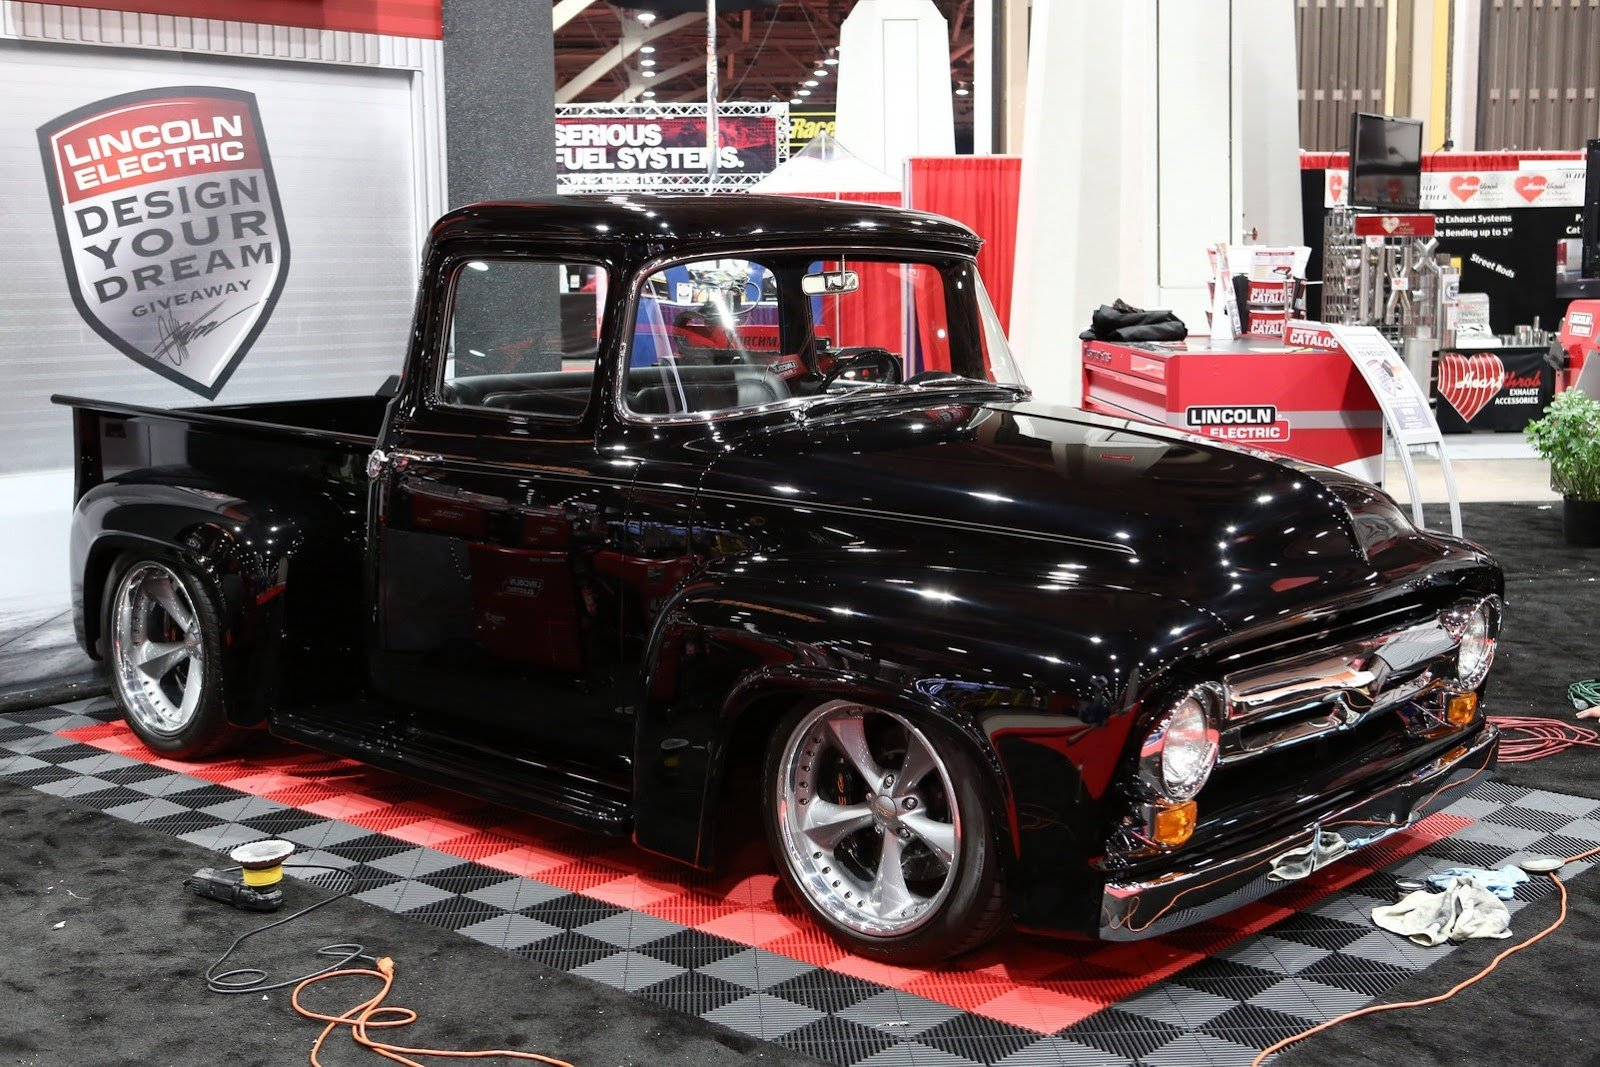 sema show 2014 cars tuning las vegas usa wallpaper 1600x1067 509261 wallpaperup. Black Bedroom Furniture Sets. Home Design Ideas